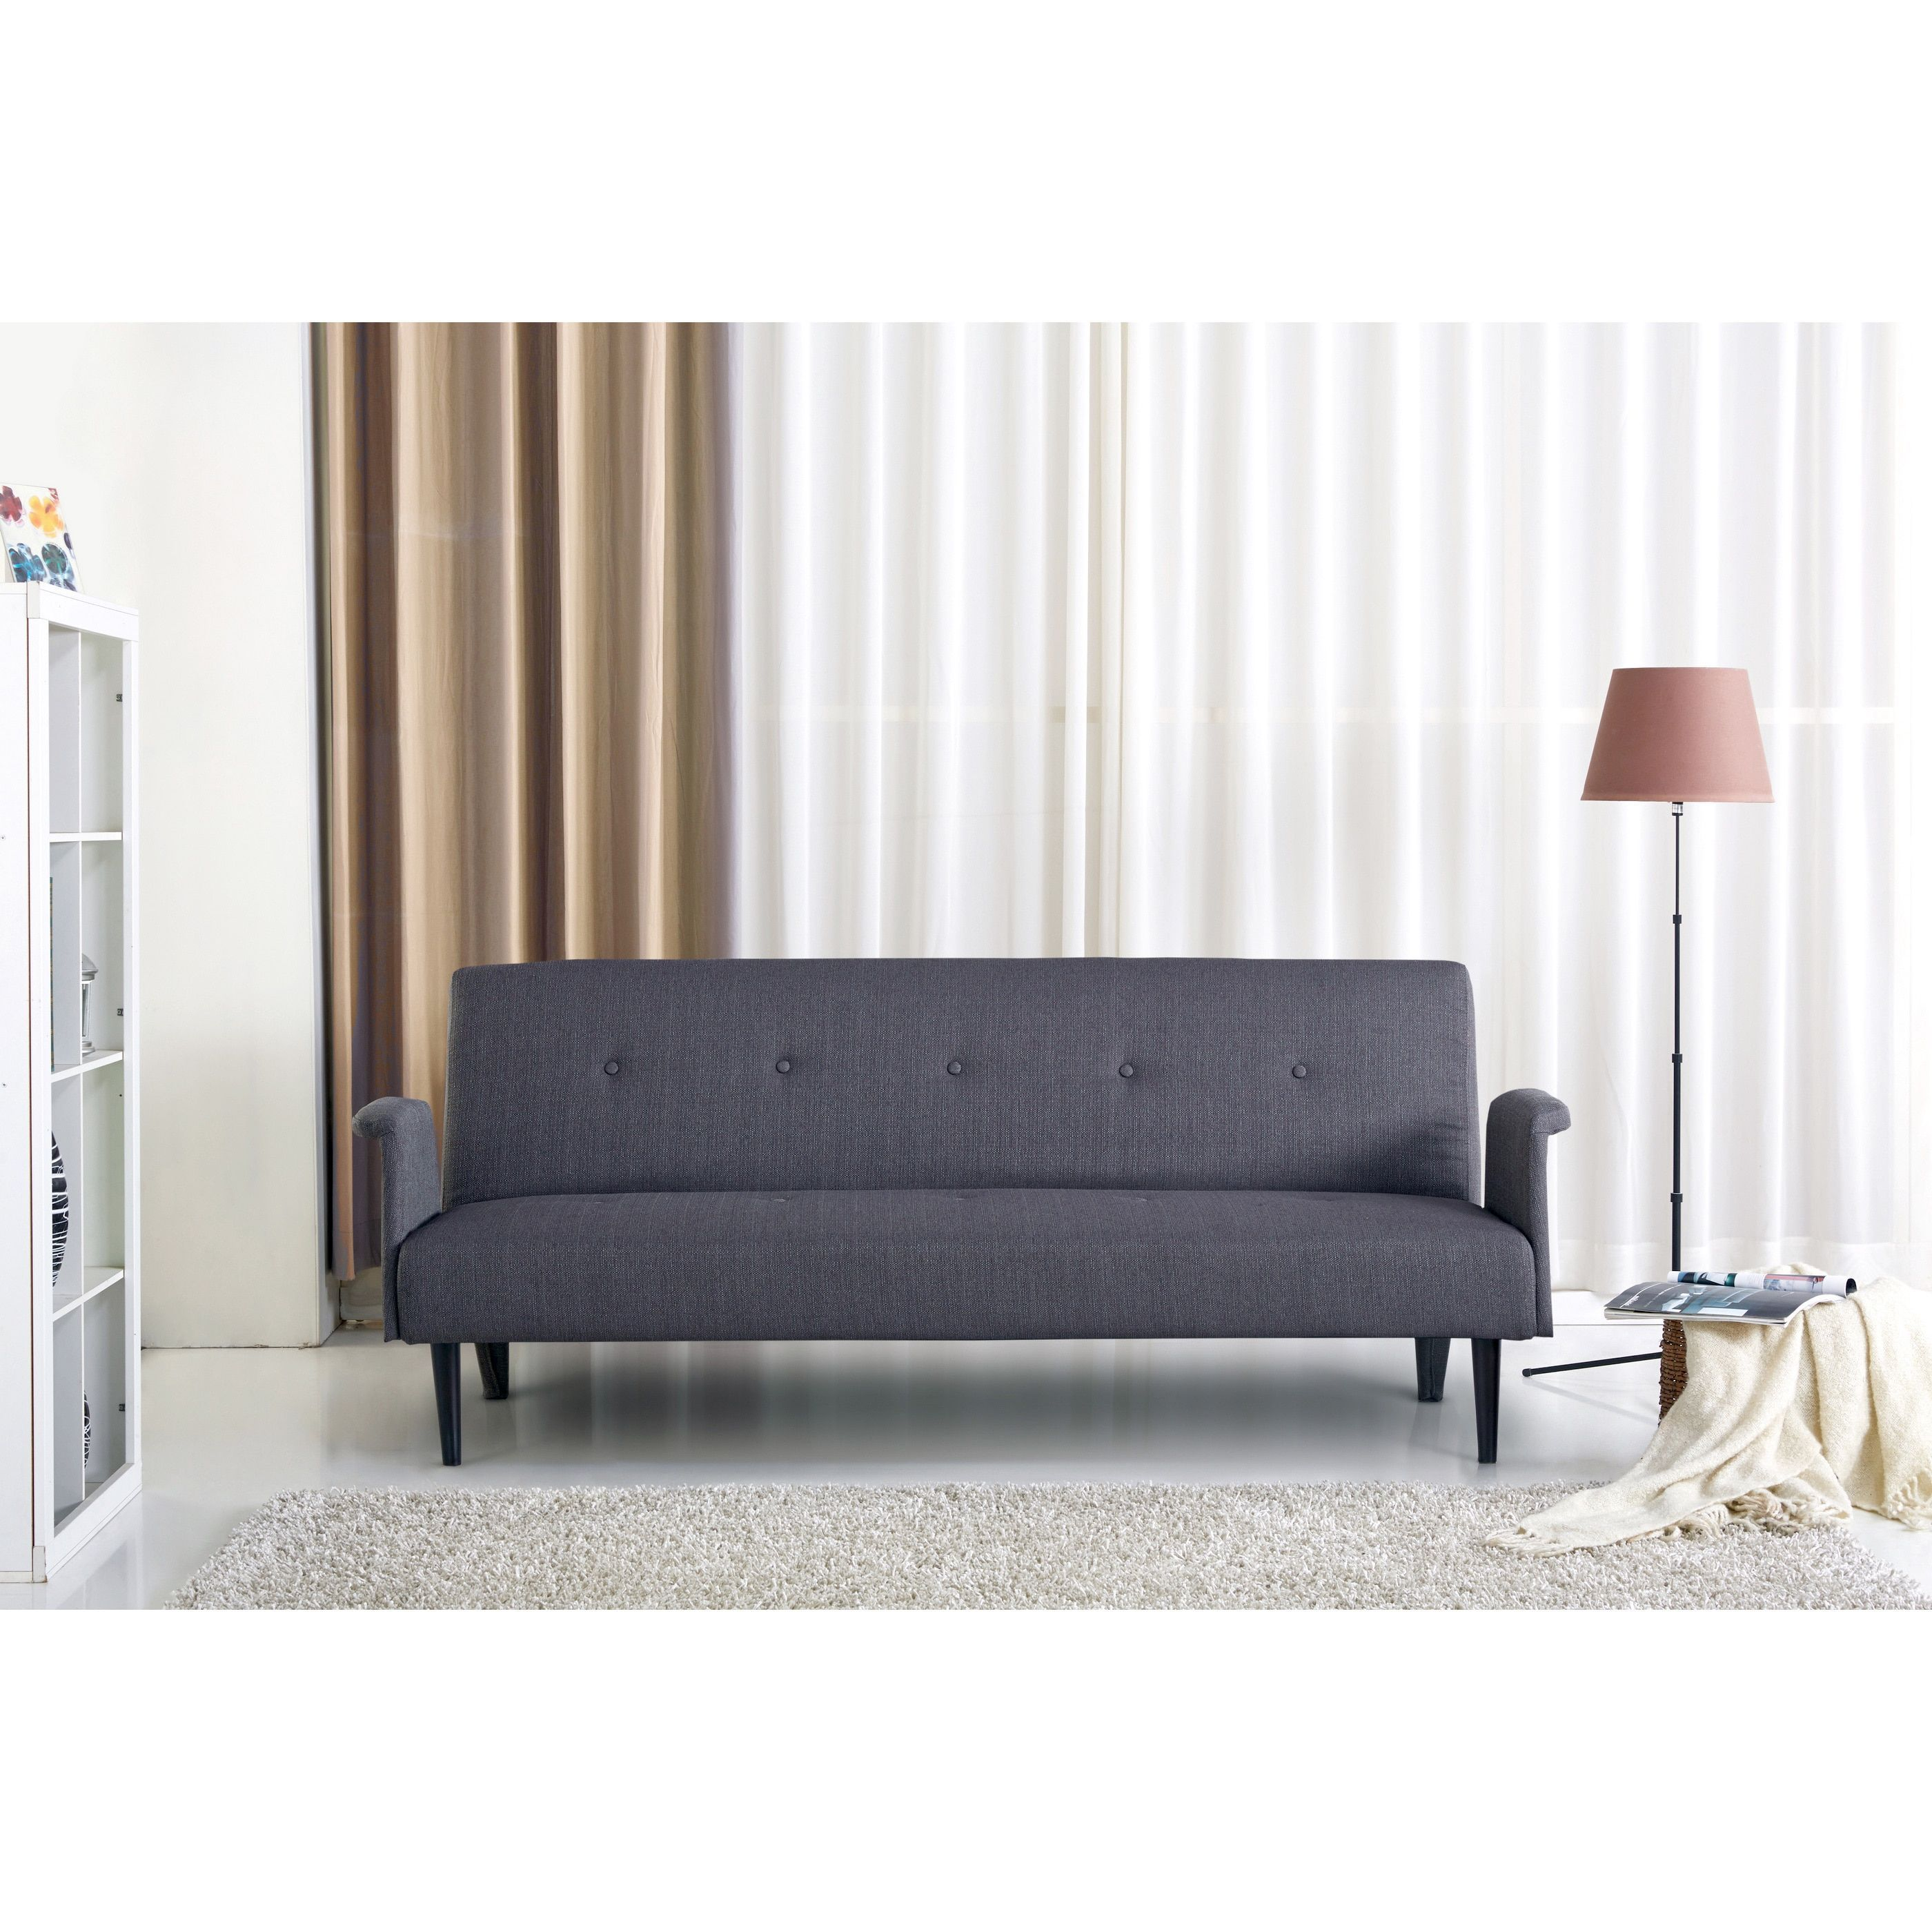 Porter International Designs Sitswell Naomi Black and Grey Futon